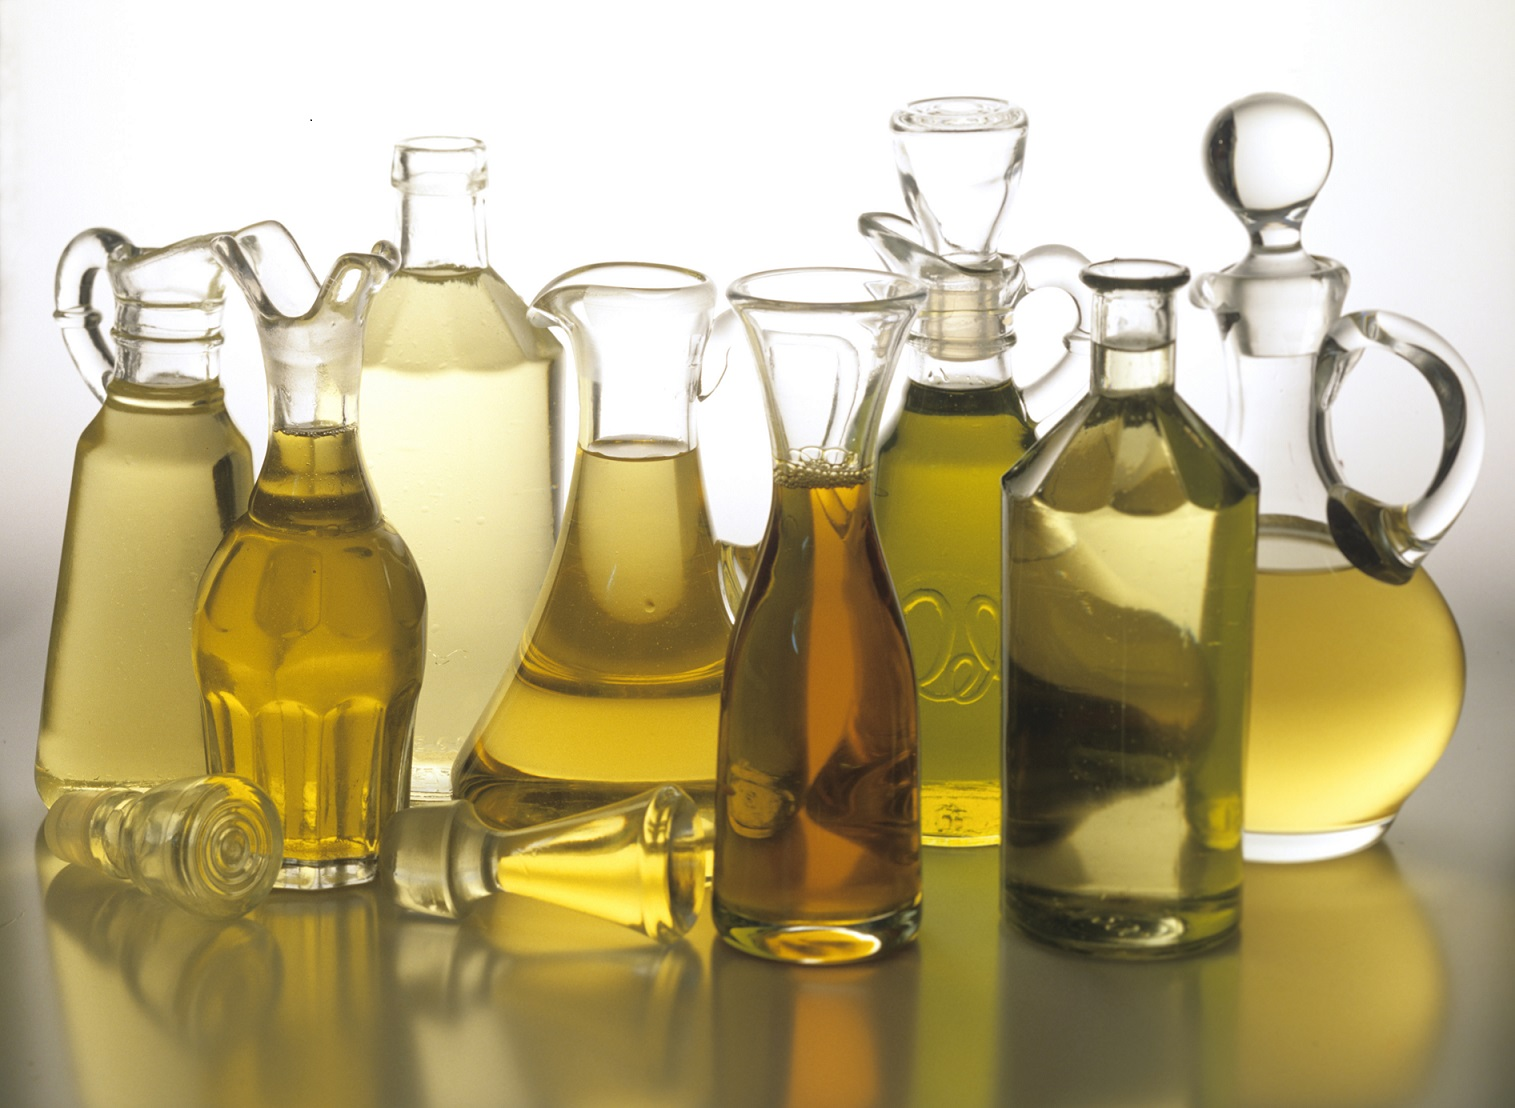 history of edible oil Read this essay on edible oil industry analysis come browse our large digital warehouse of free sample essays analysis of edible oil industry analysis of pakistan industry table of contents brief history about the edible oil industry 8 present situation of edible oil industry in.